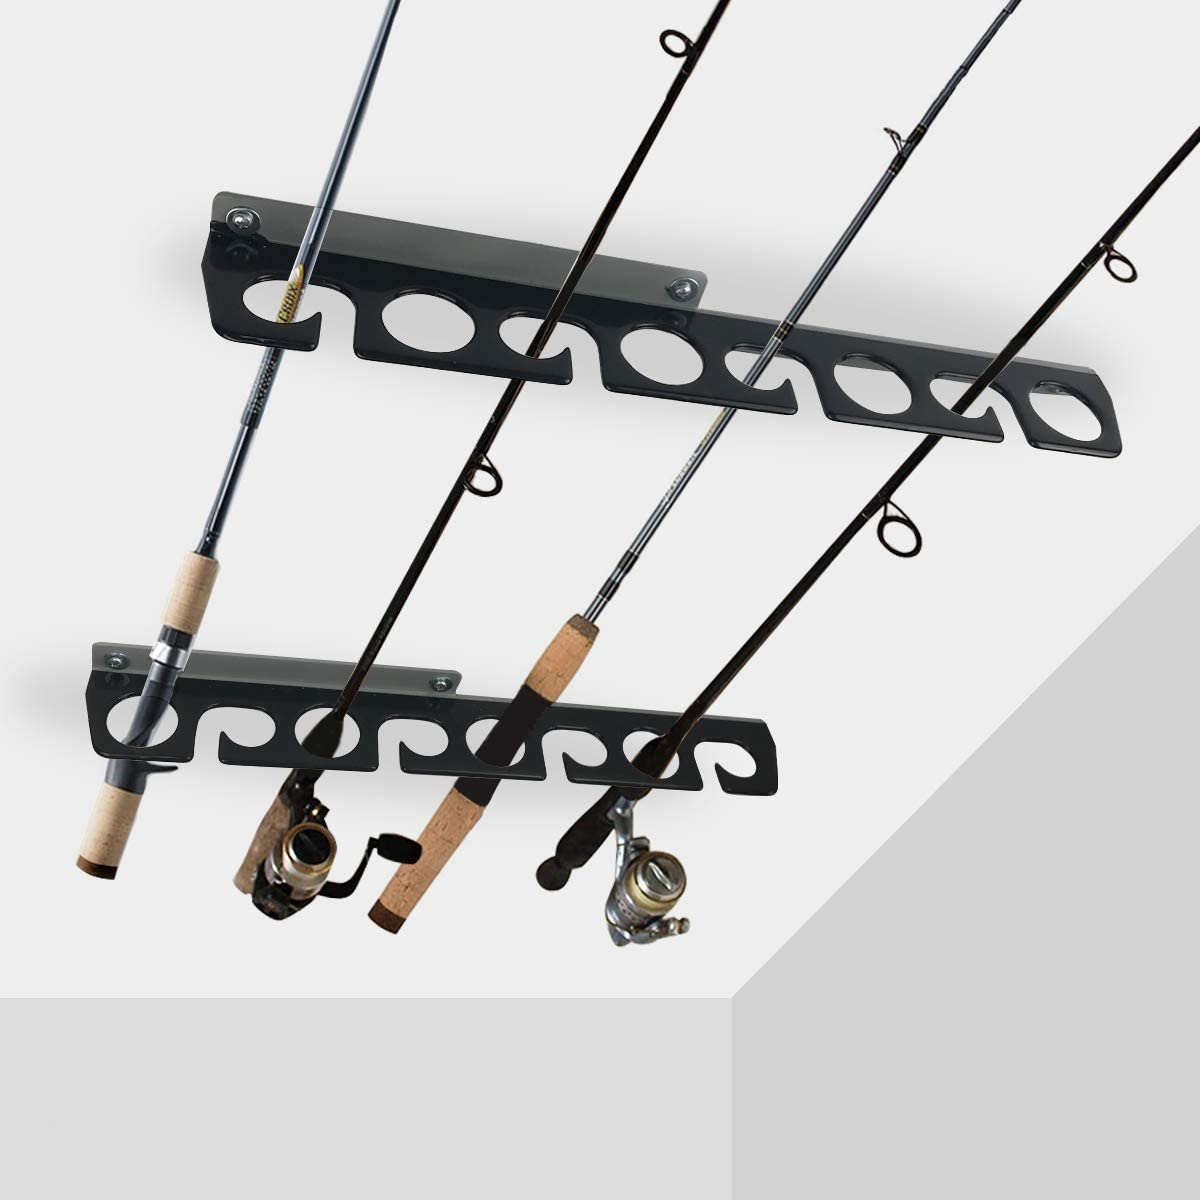 Amazon Com Homydom Fishing Rod Ceiling Wall Storage Rack Fishing Pole Holder For Garage Cabin Basement Heavy Duty Holds Up To 8 Fishing Rods Home Improvement